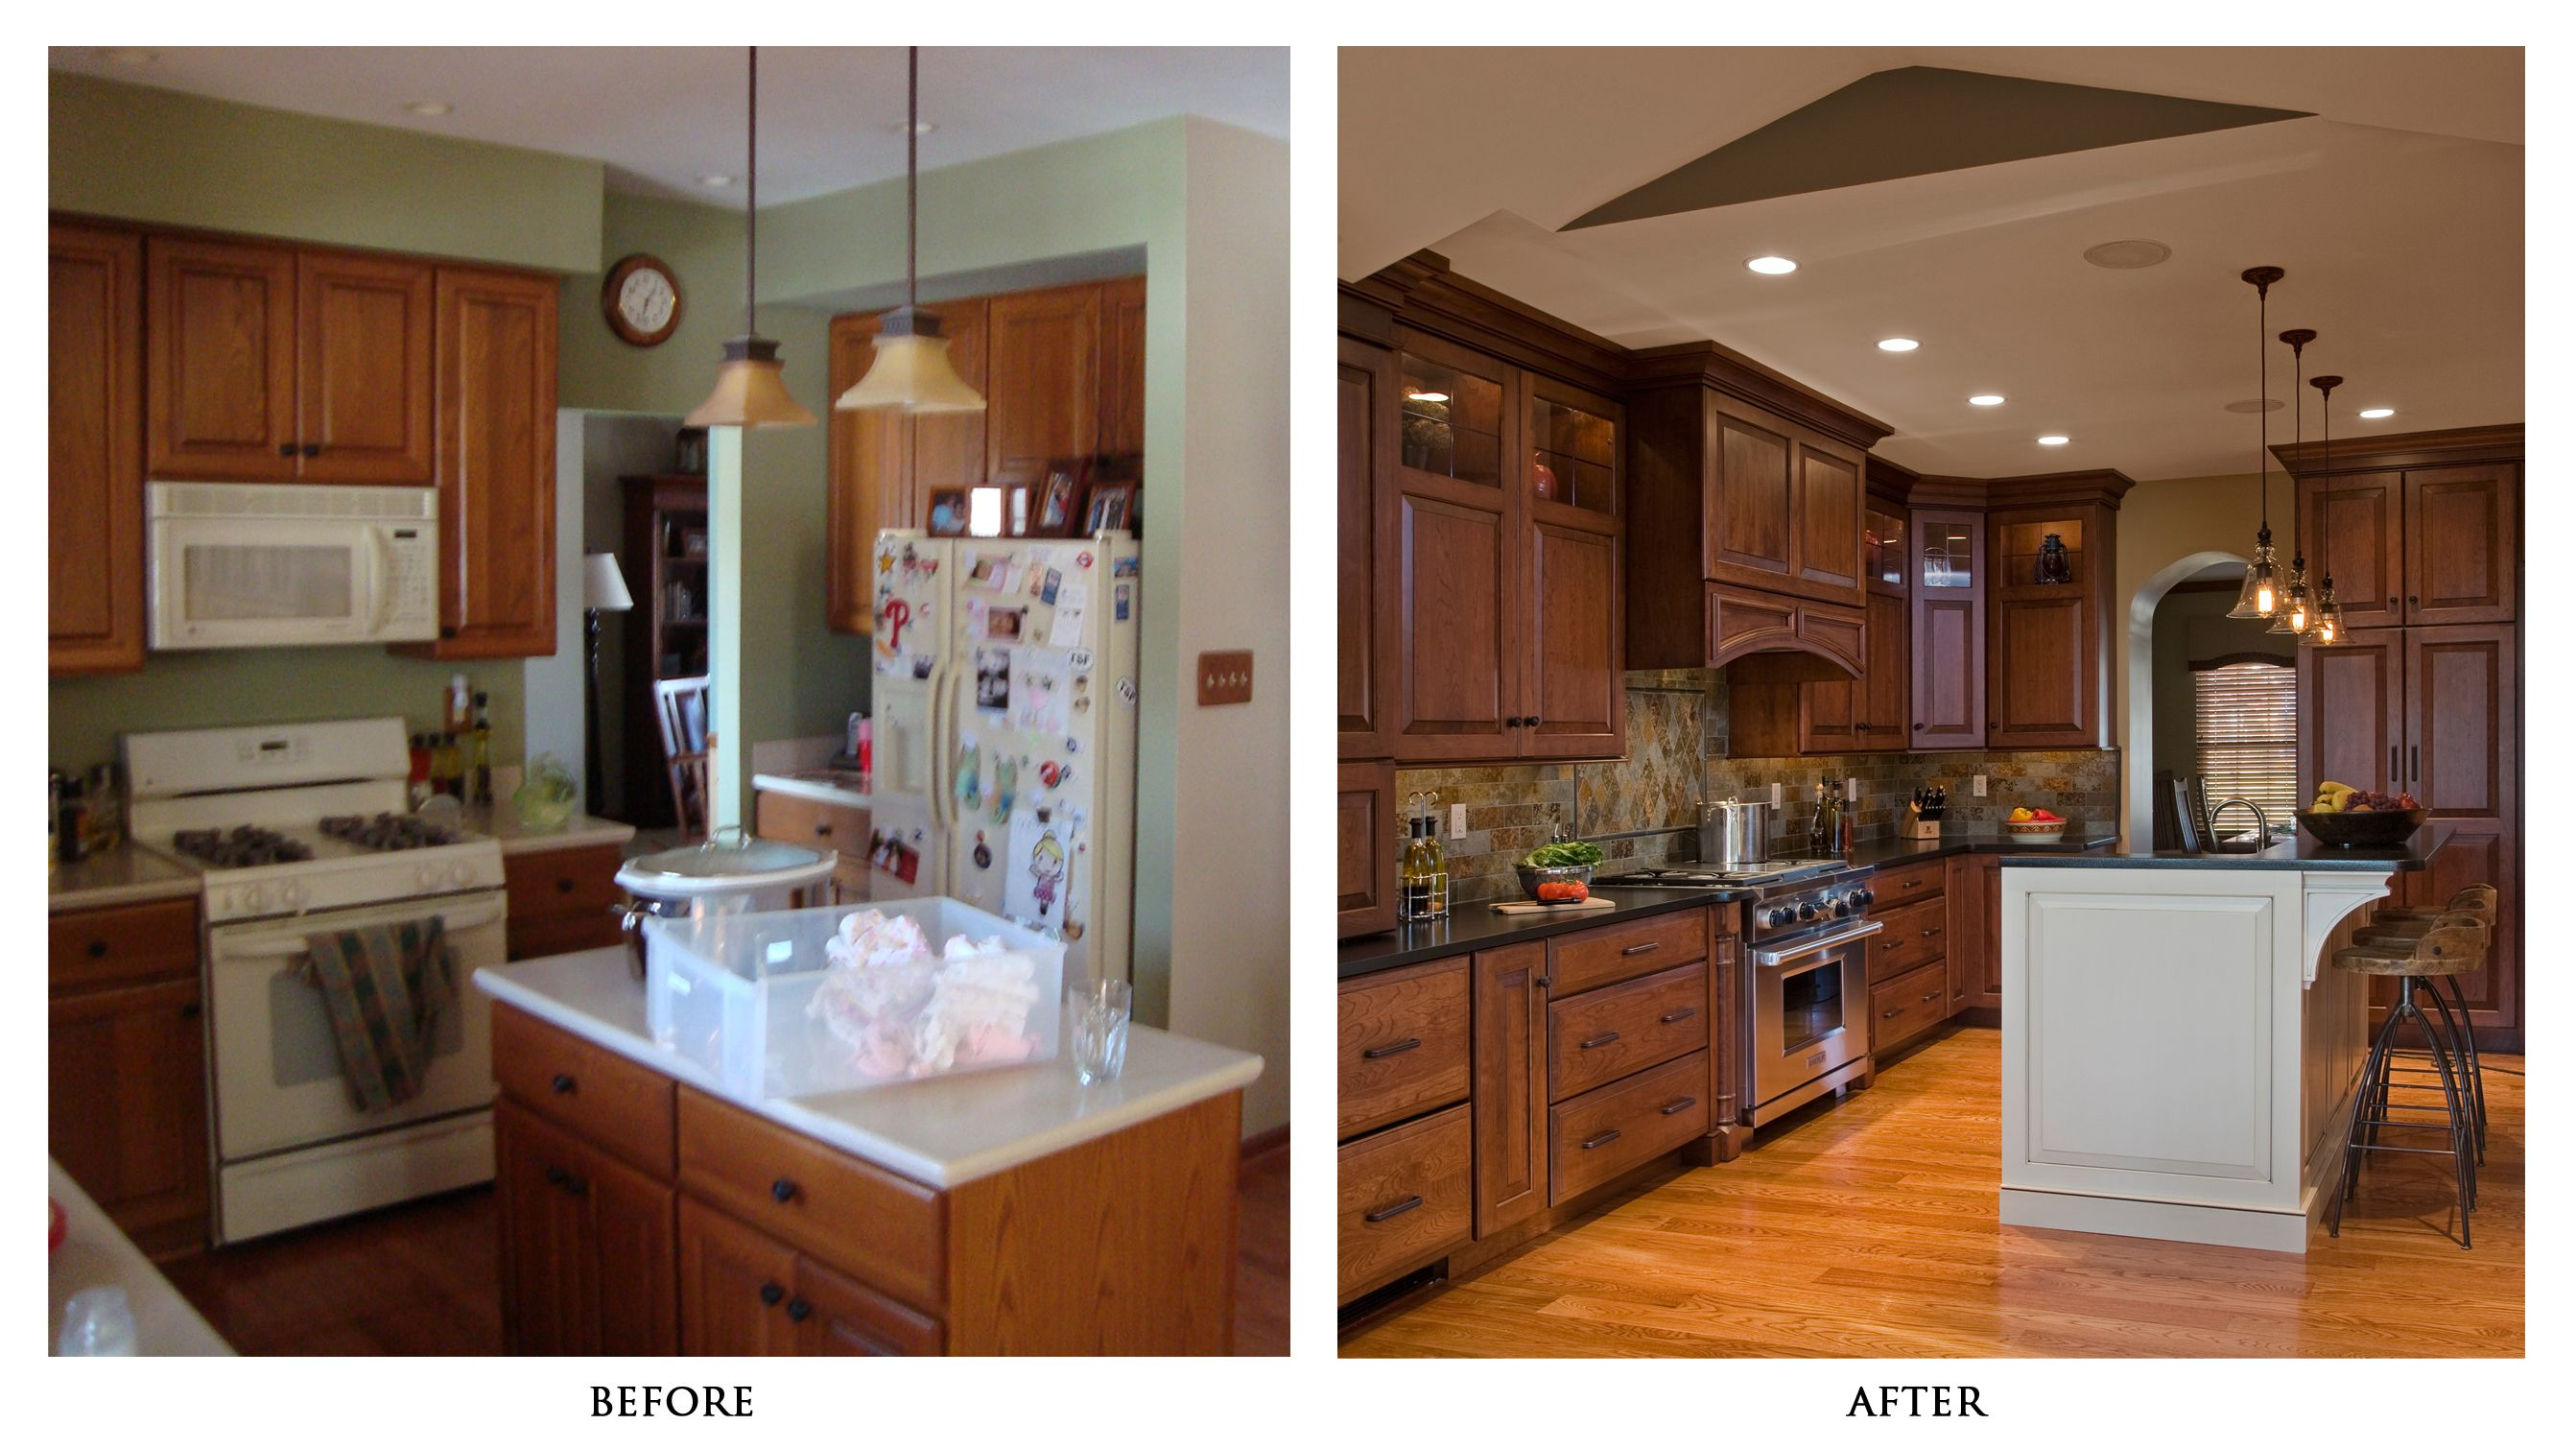 Kitchen Renovation Before And After kitchen remodel ideas before and after - clubdeases